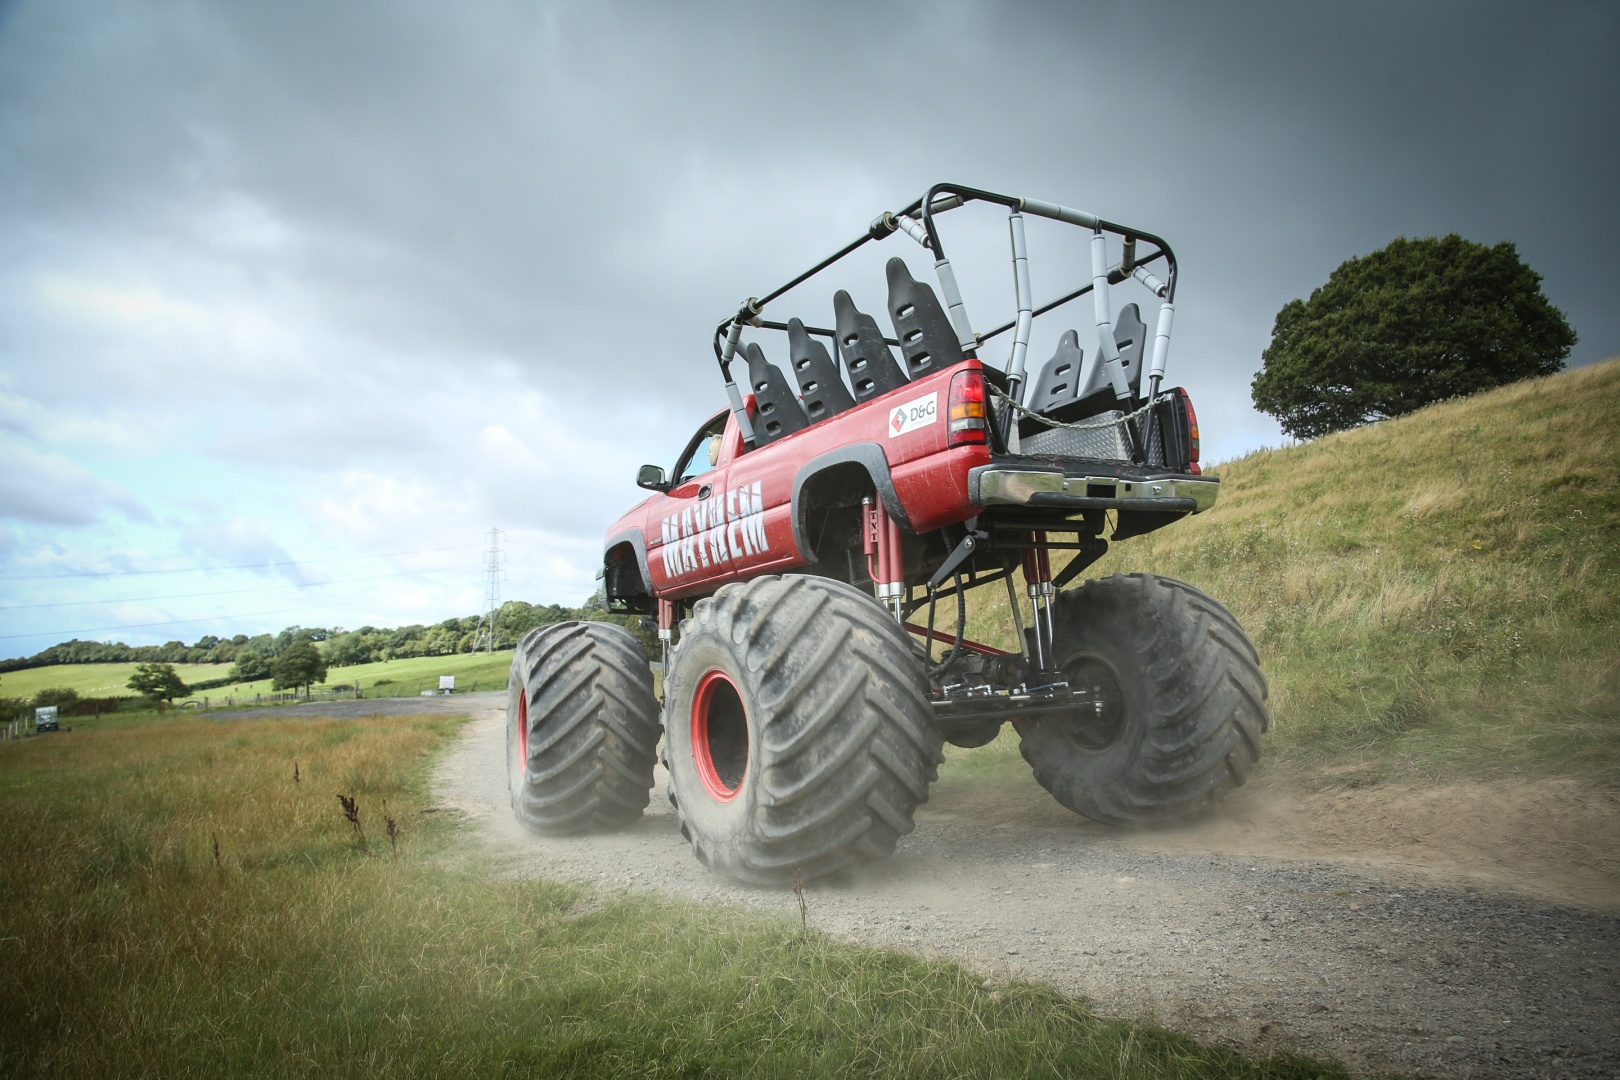 Weekday Monster Truck Experience in Shropshire-7